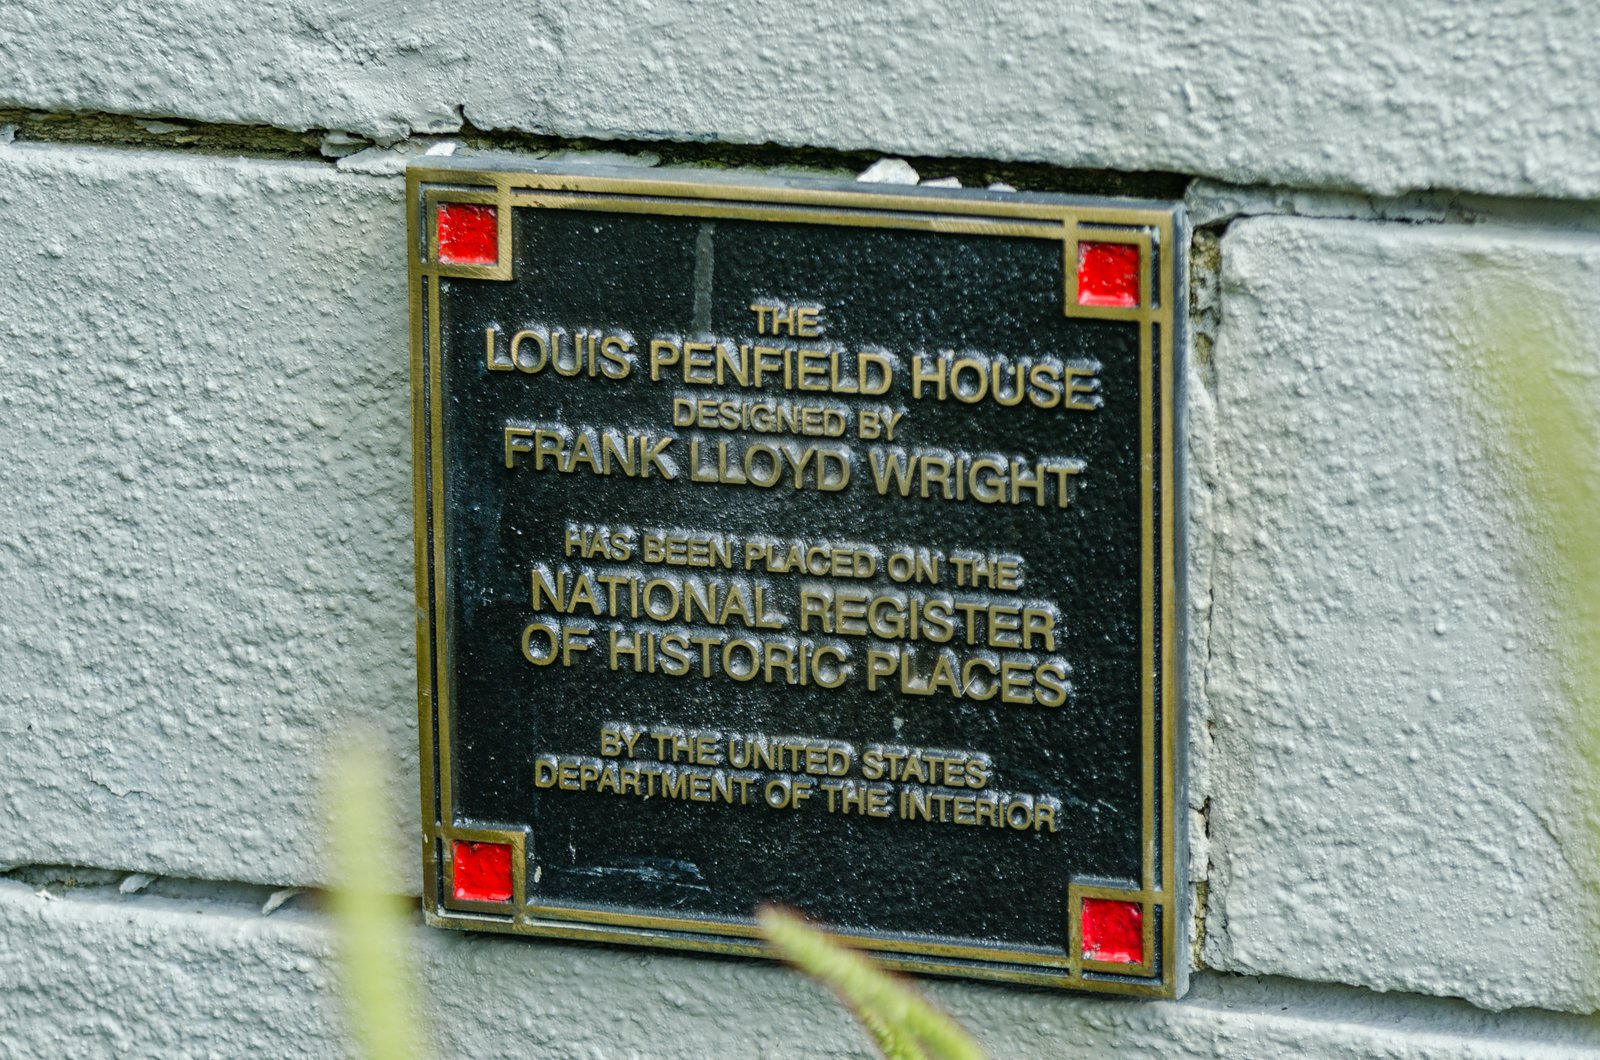 Photo 17 of 17 in The Frank Lloyd Wright-Designed Louis Penfield House in Ohio Is For Sale For $1.3M